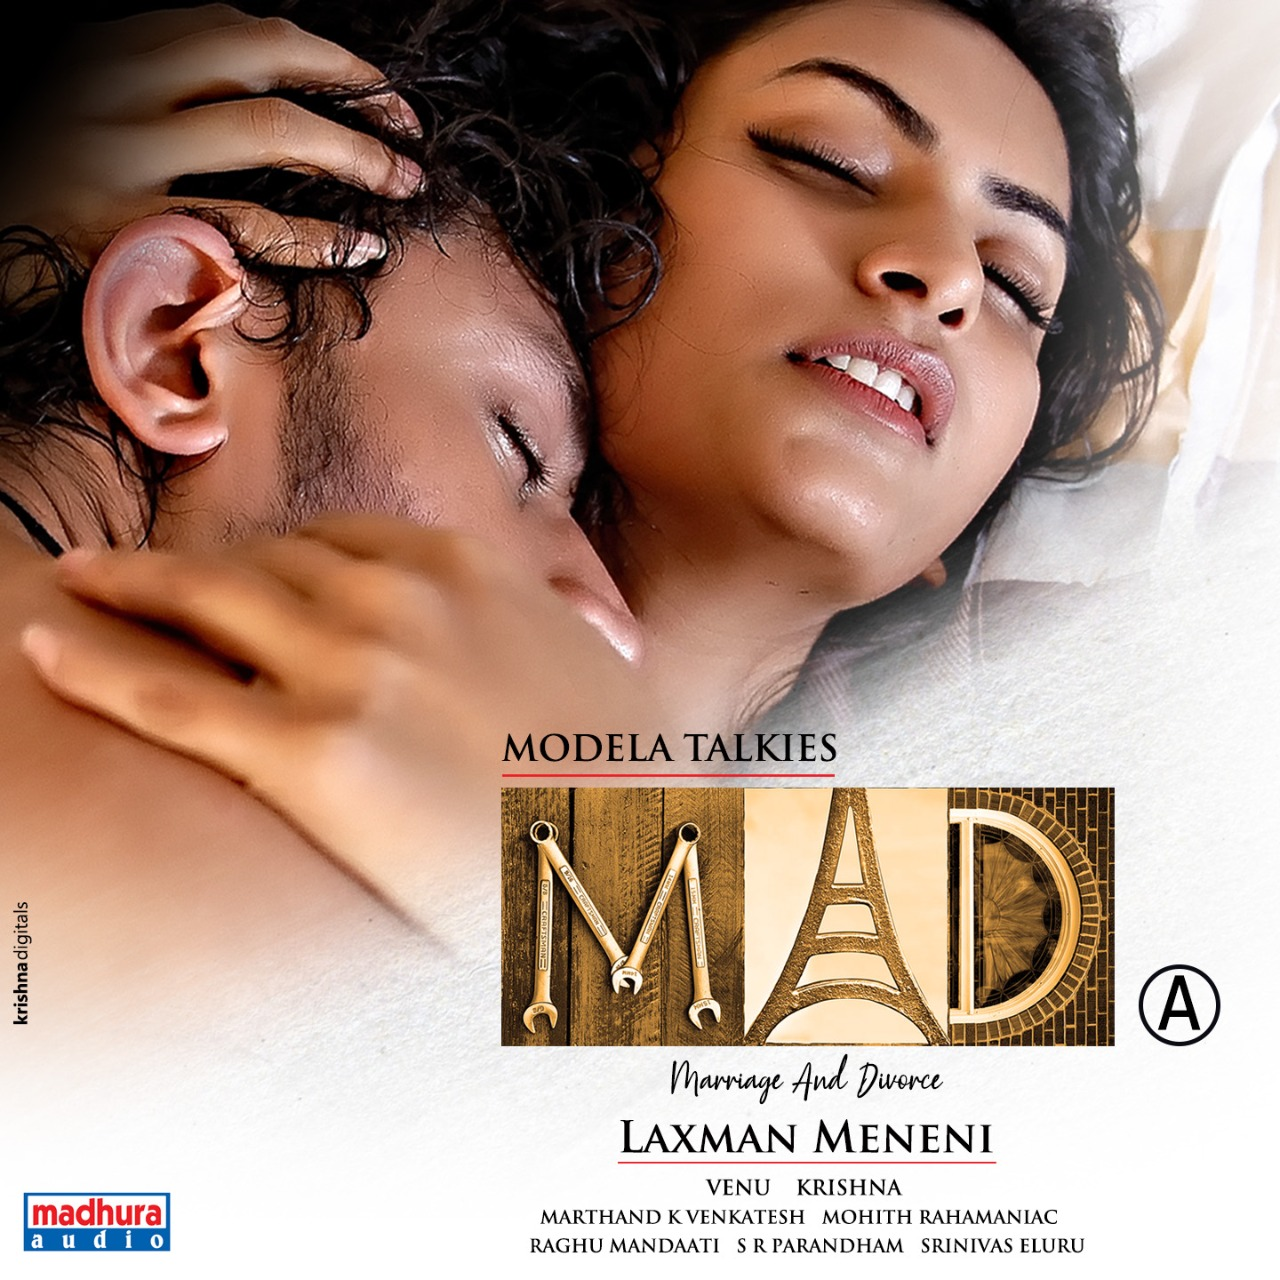 MAD Marriage And Divorce (2021) Telugu 720p HDRip x264 AAC 1.4GB Download